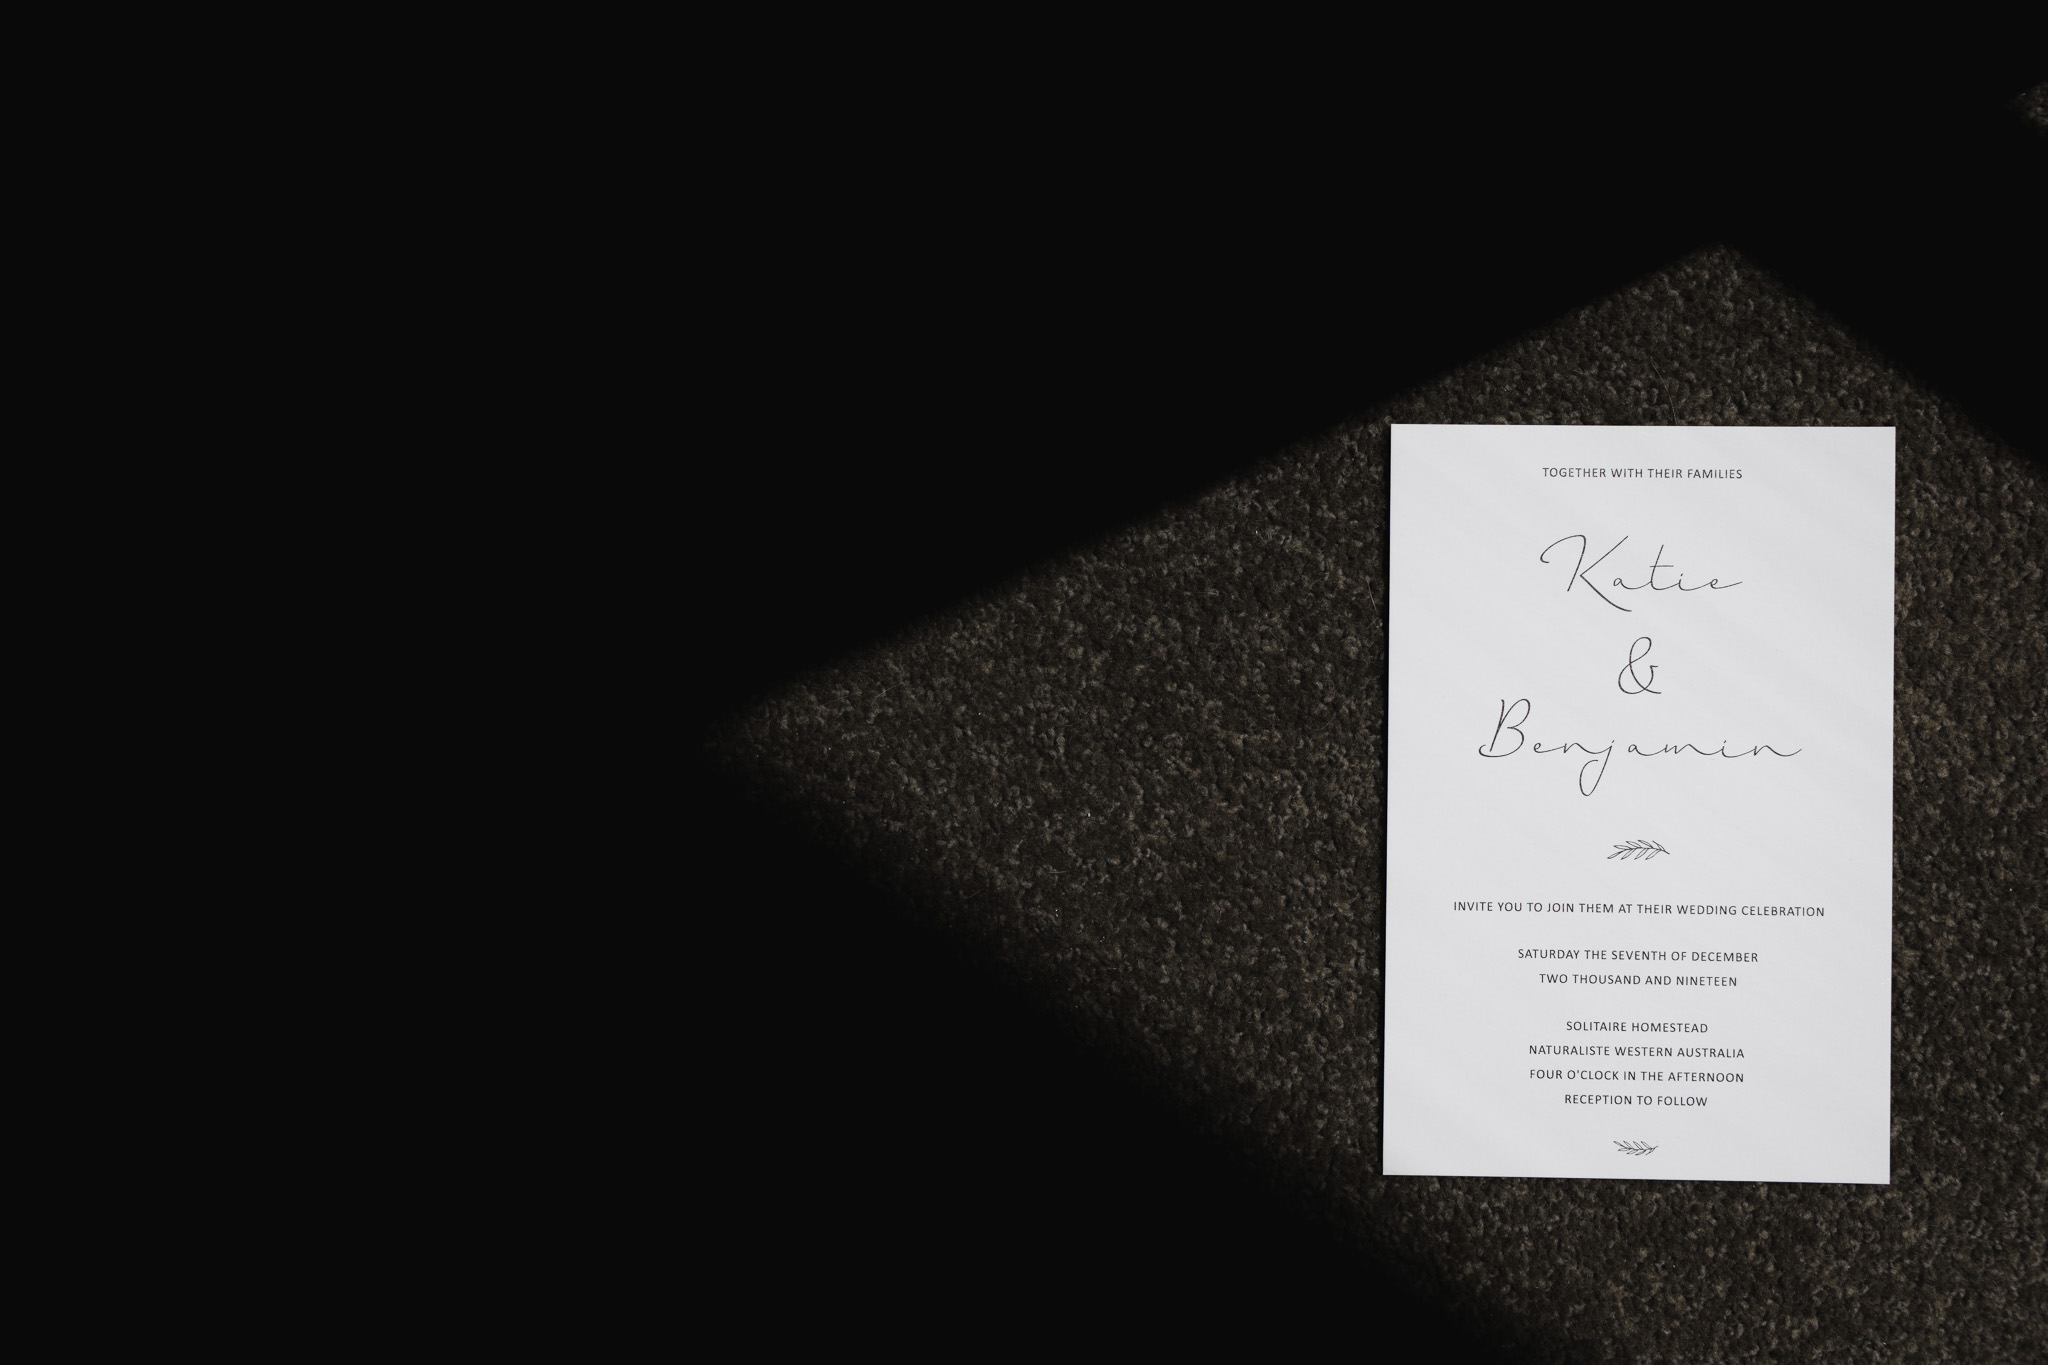 Black and white photo of modern wedding letterpress invitation in shadows